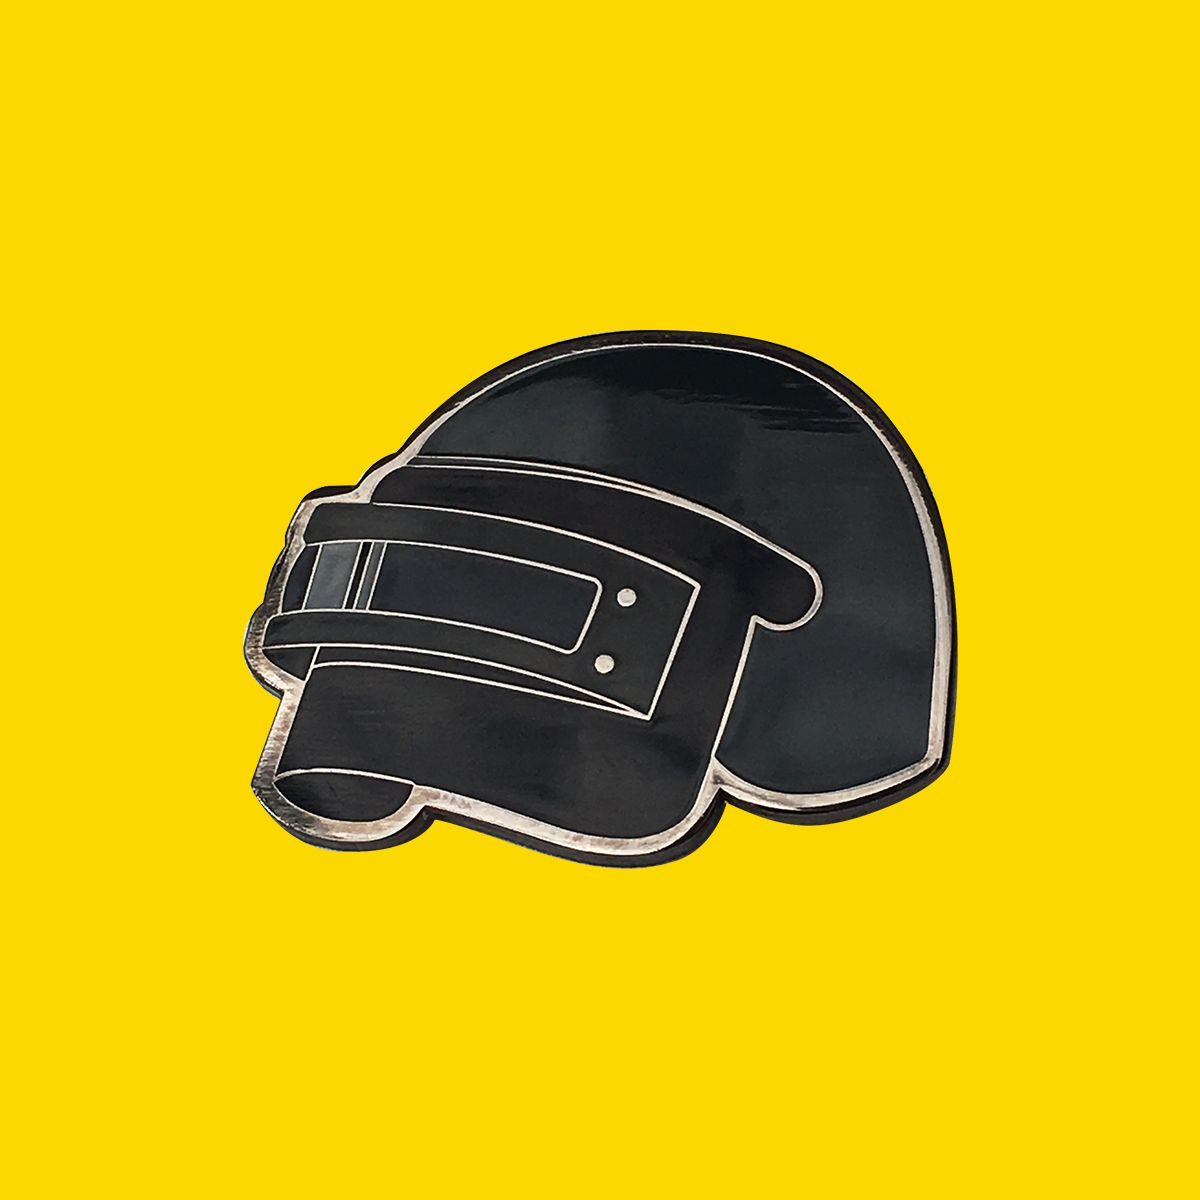 Pubg Icon - I designed some PUBG icons and turned them into pins ...